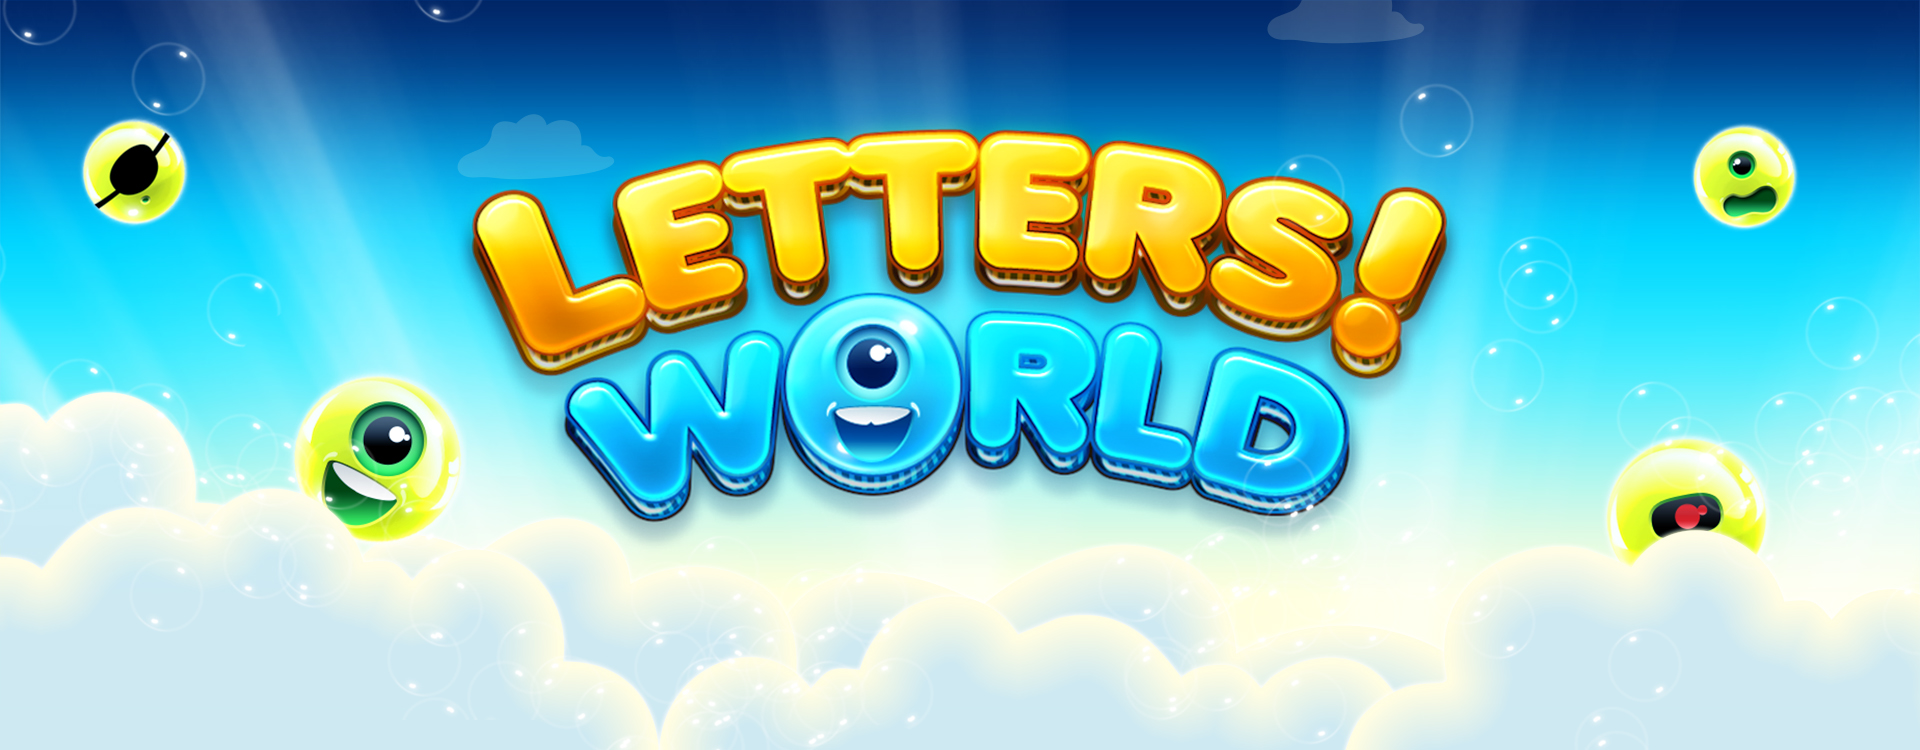 Letters World!